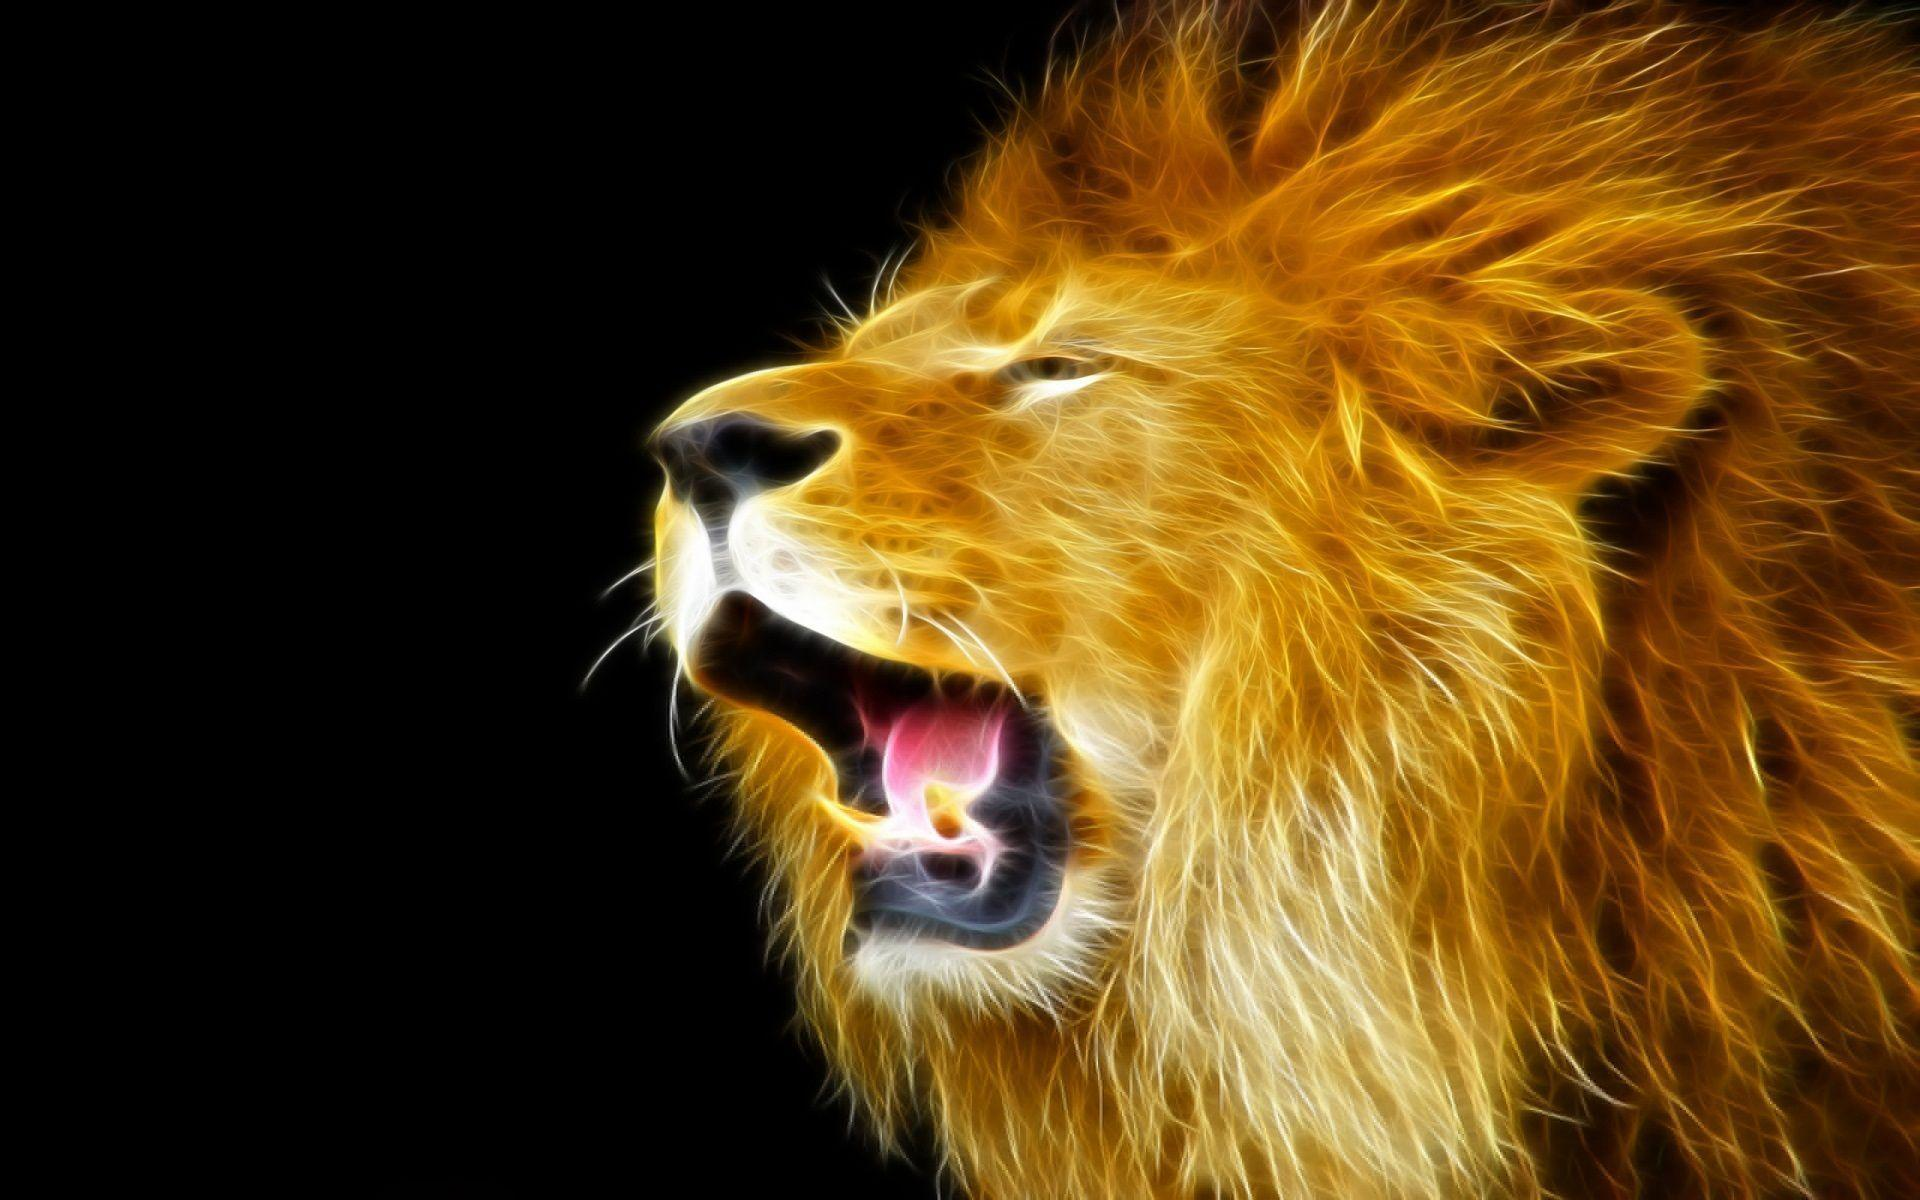 Lion Wallpapers HD | fbpapa.